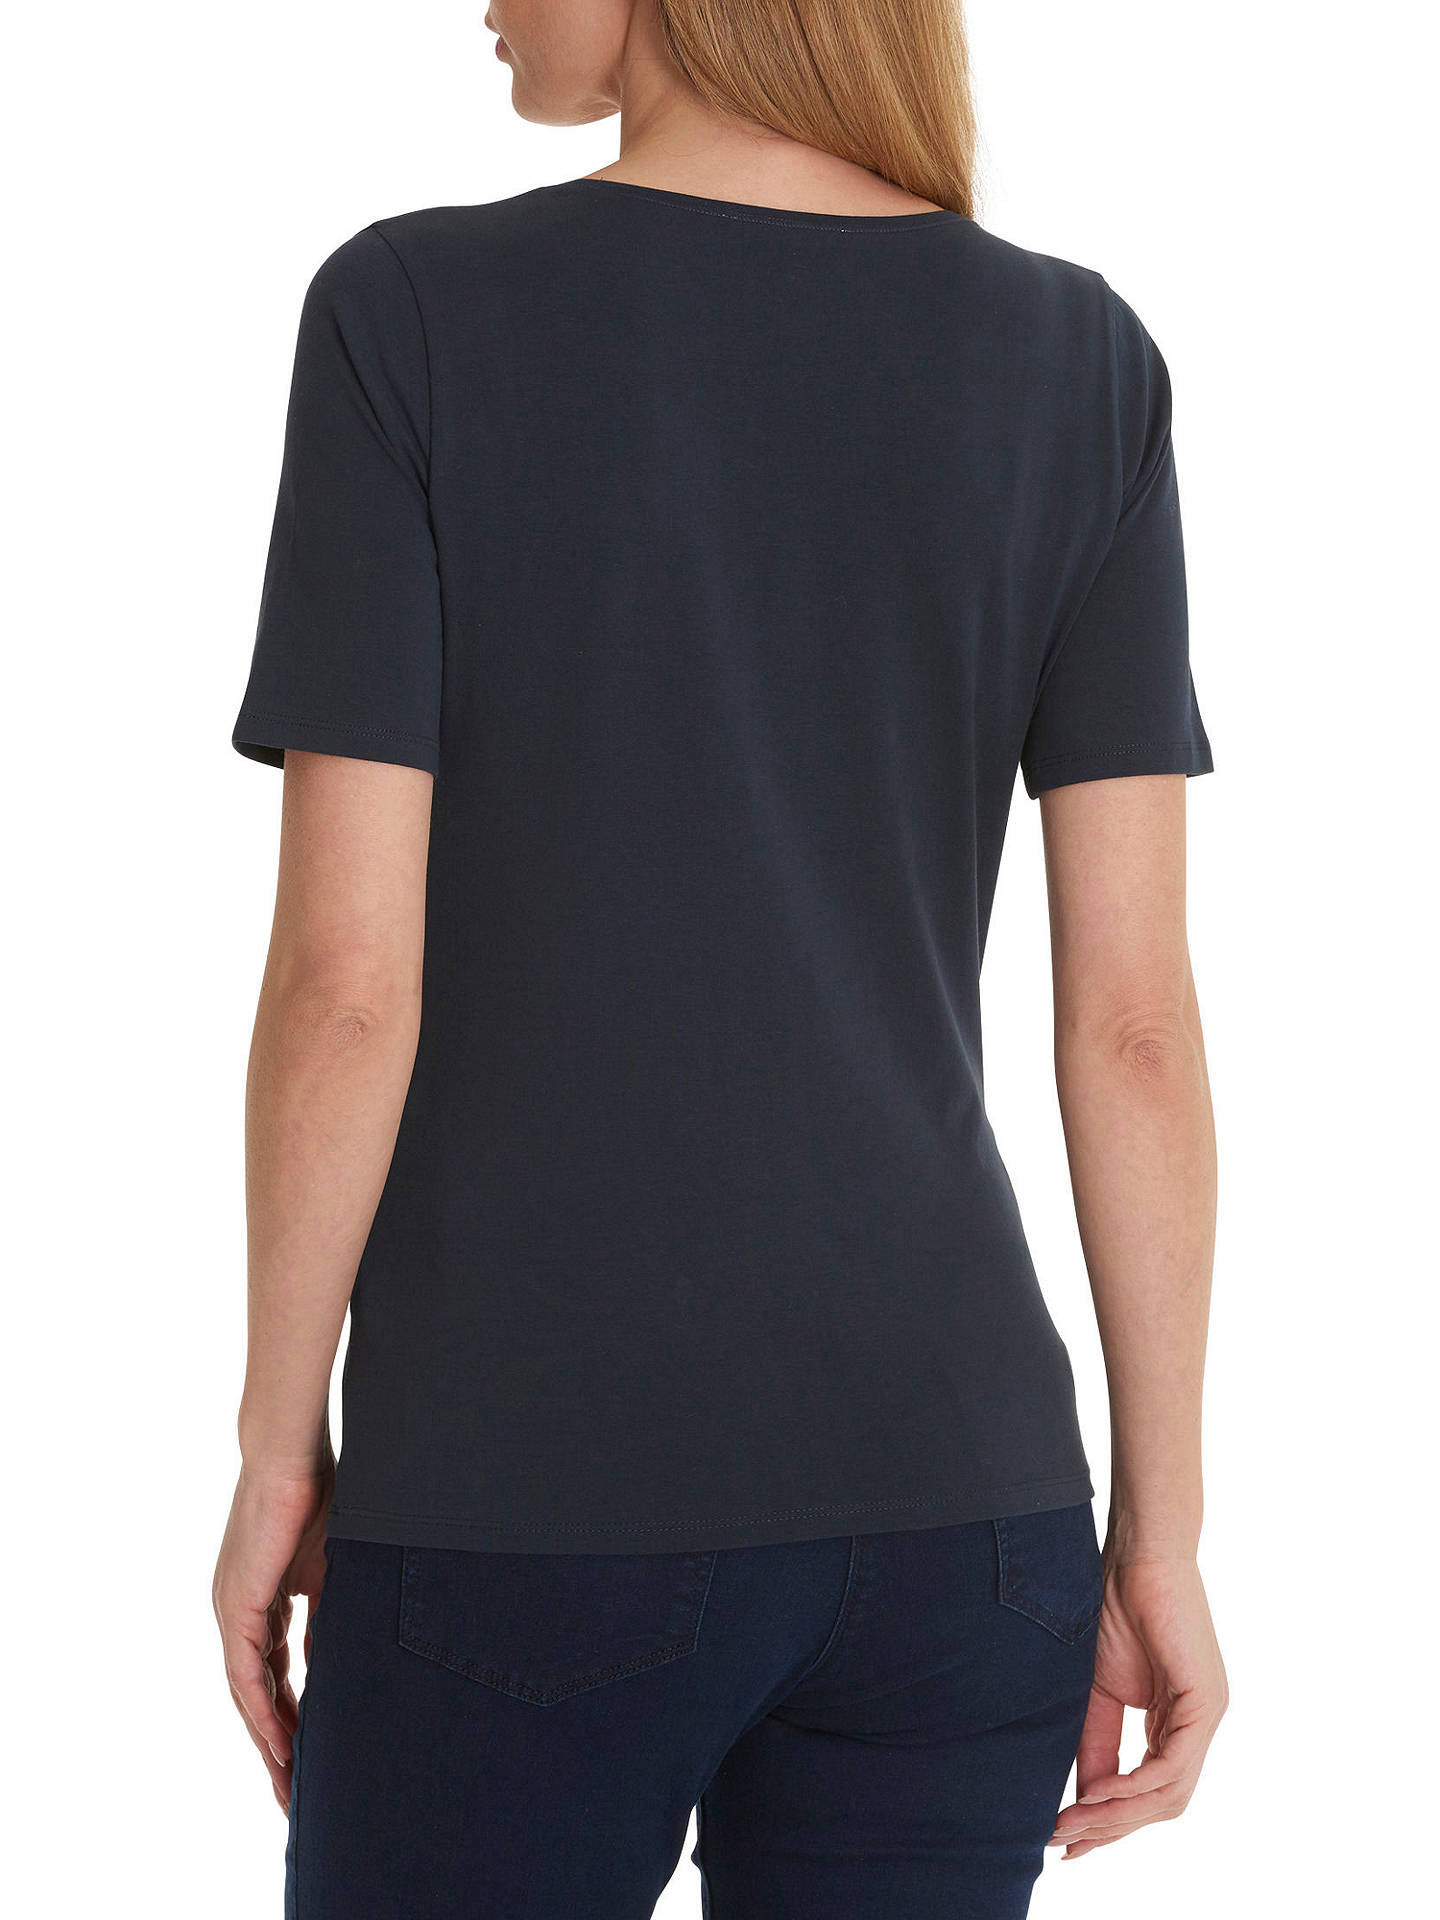 BuyBetty Barclay Short Sleeve T-Shirt, Dark Sky, 10 Online at johnlewis.com